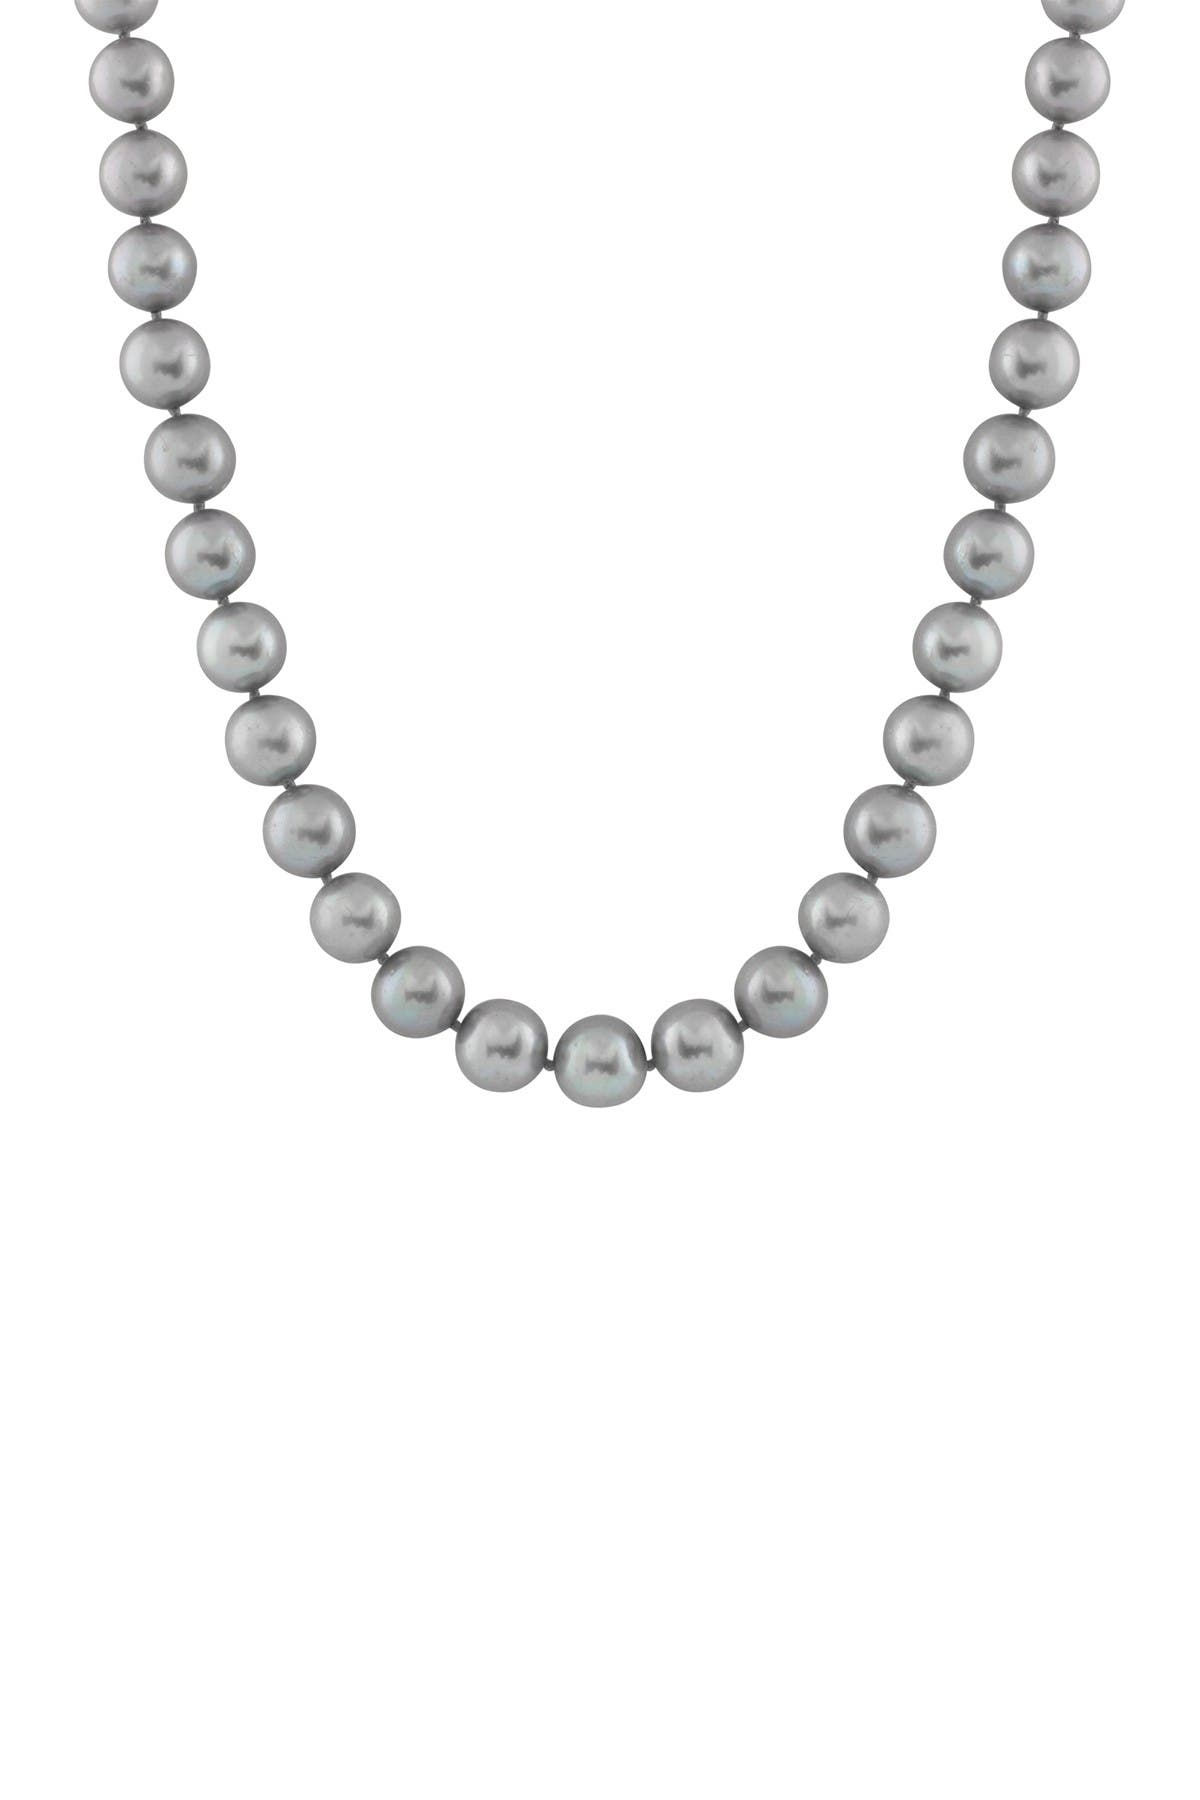 Image of Splendid Pearls 14K White Gold 7-8mm Dyed Gray Pearl Necklace